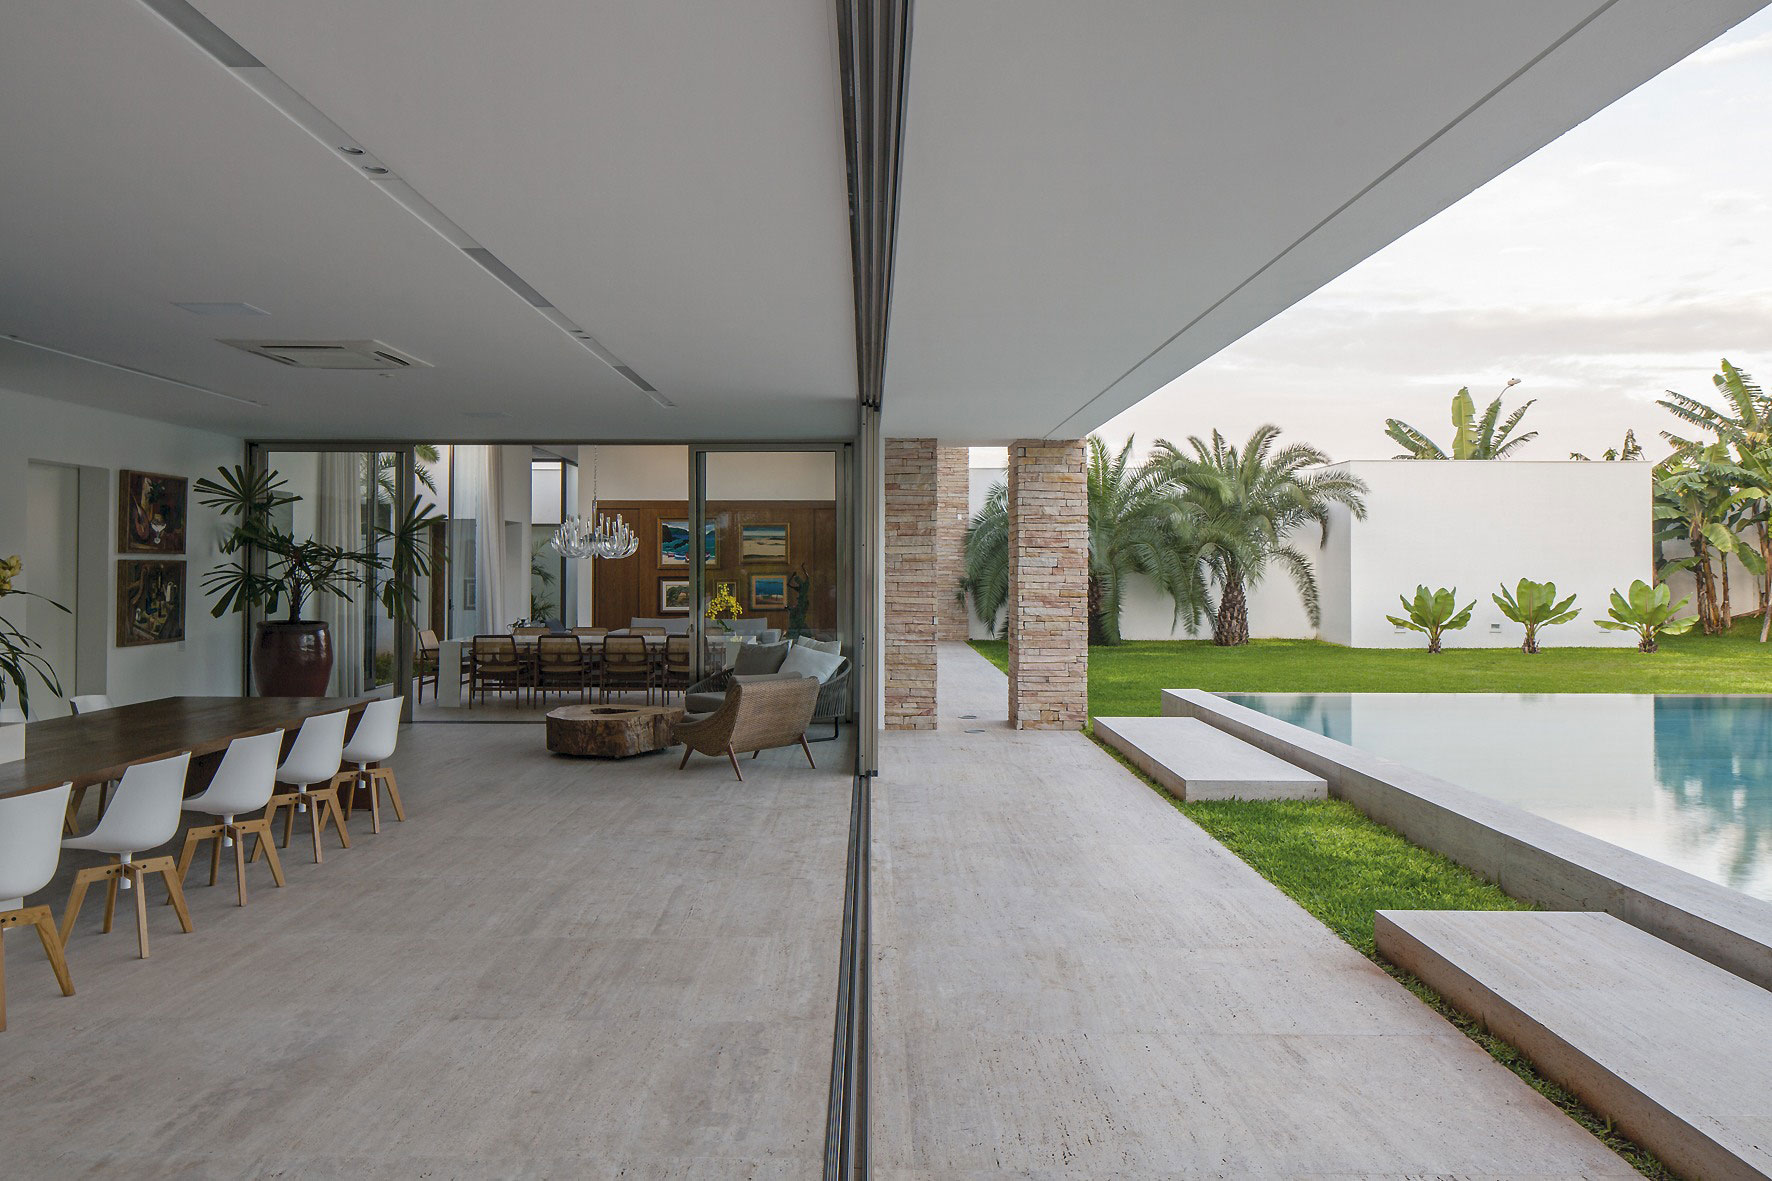 Glass Sliding Doors, Dining Space, Pool, Home in Uberlandia, Brazil